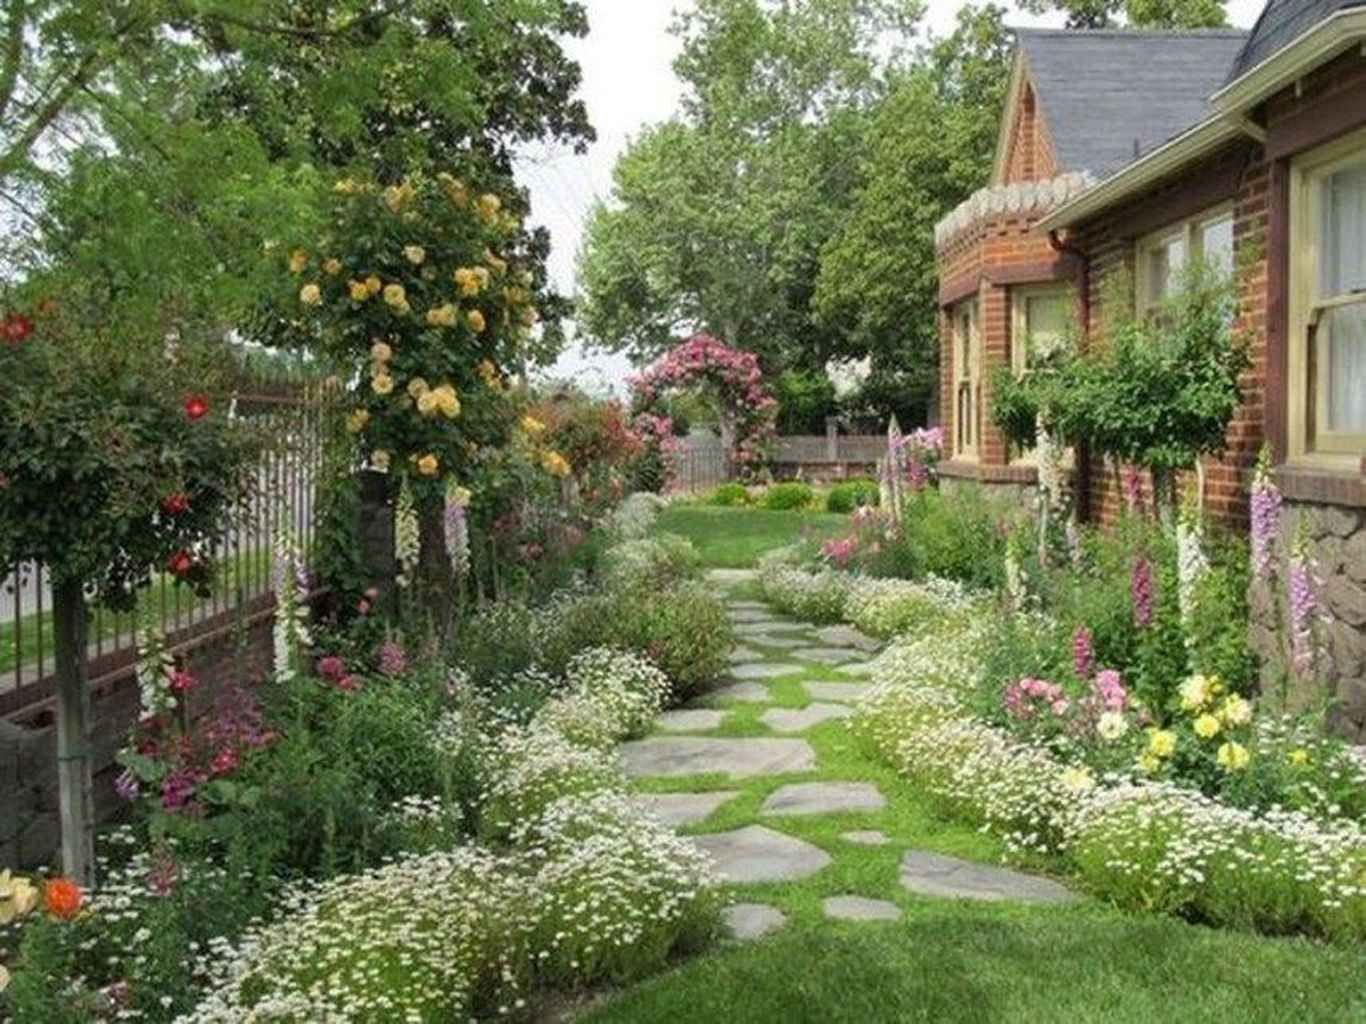 There Are Also Some Things To Consider With The Garden Paths If You Want To Create A Typical Cottage Garden You Sh Garten Cottage Garten Landschaftsbau Ideen